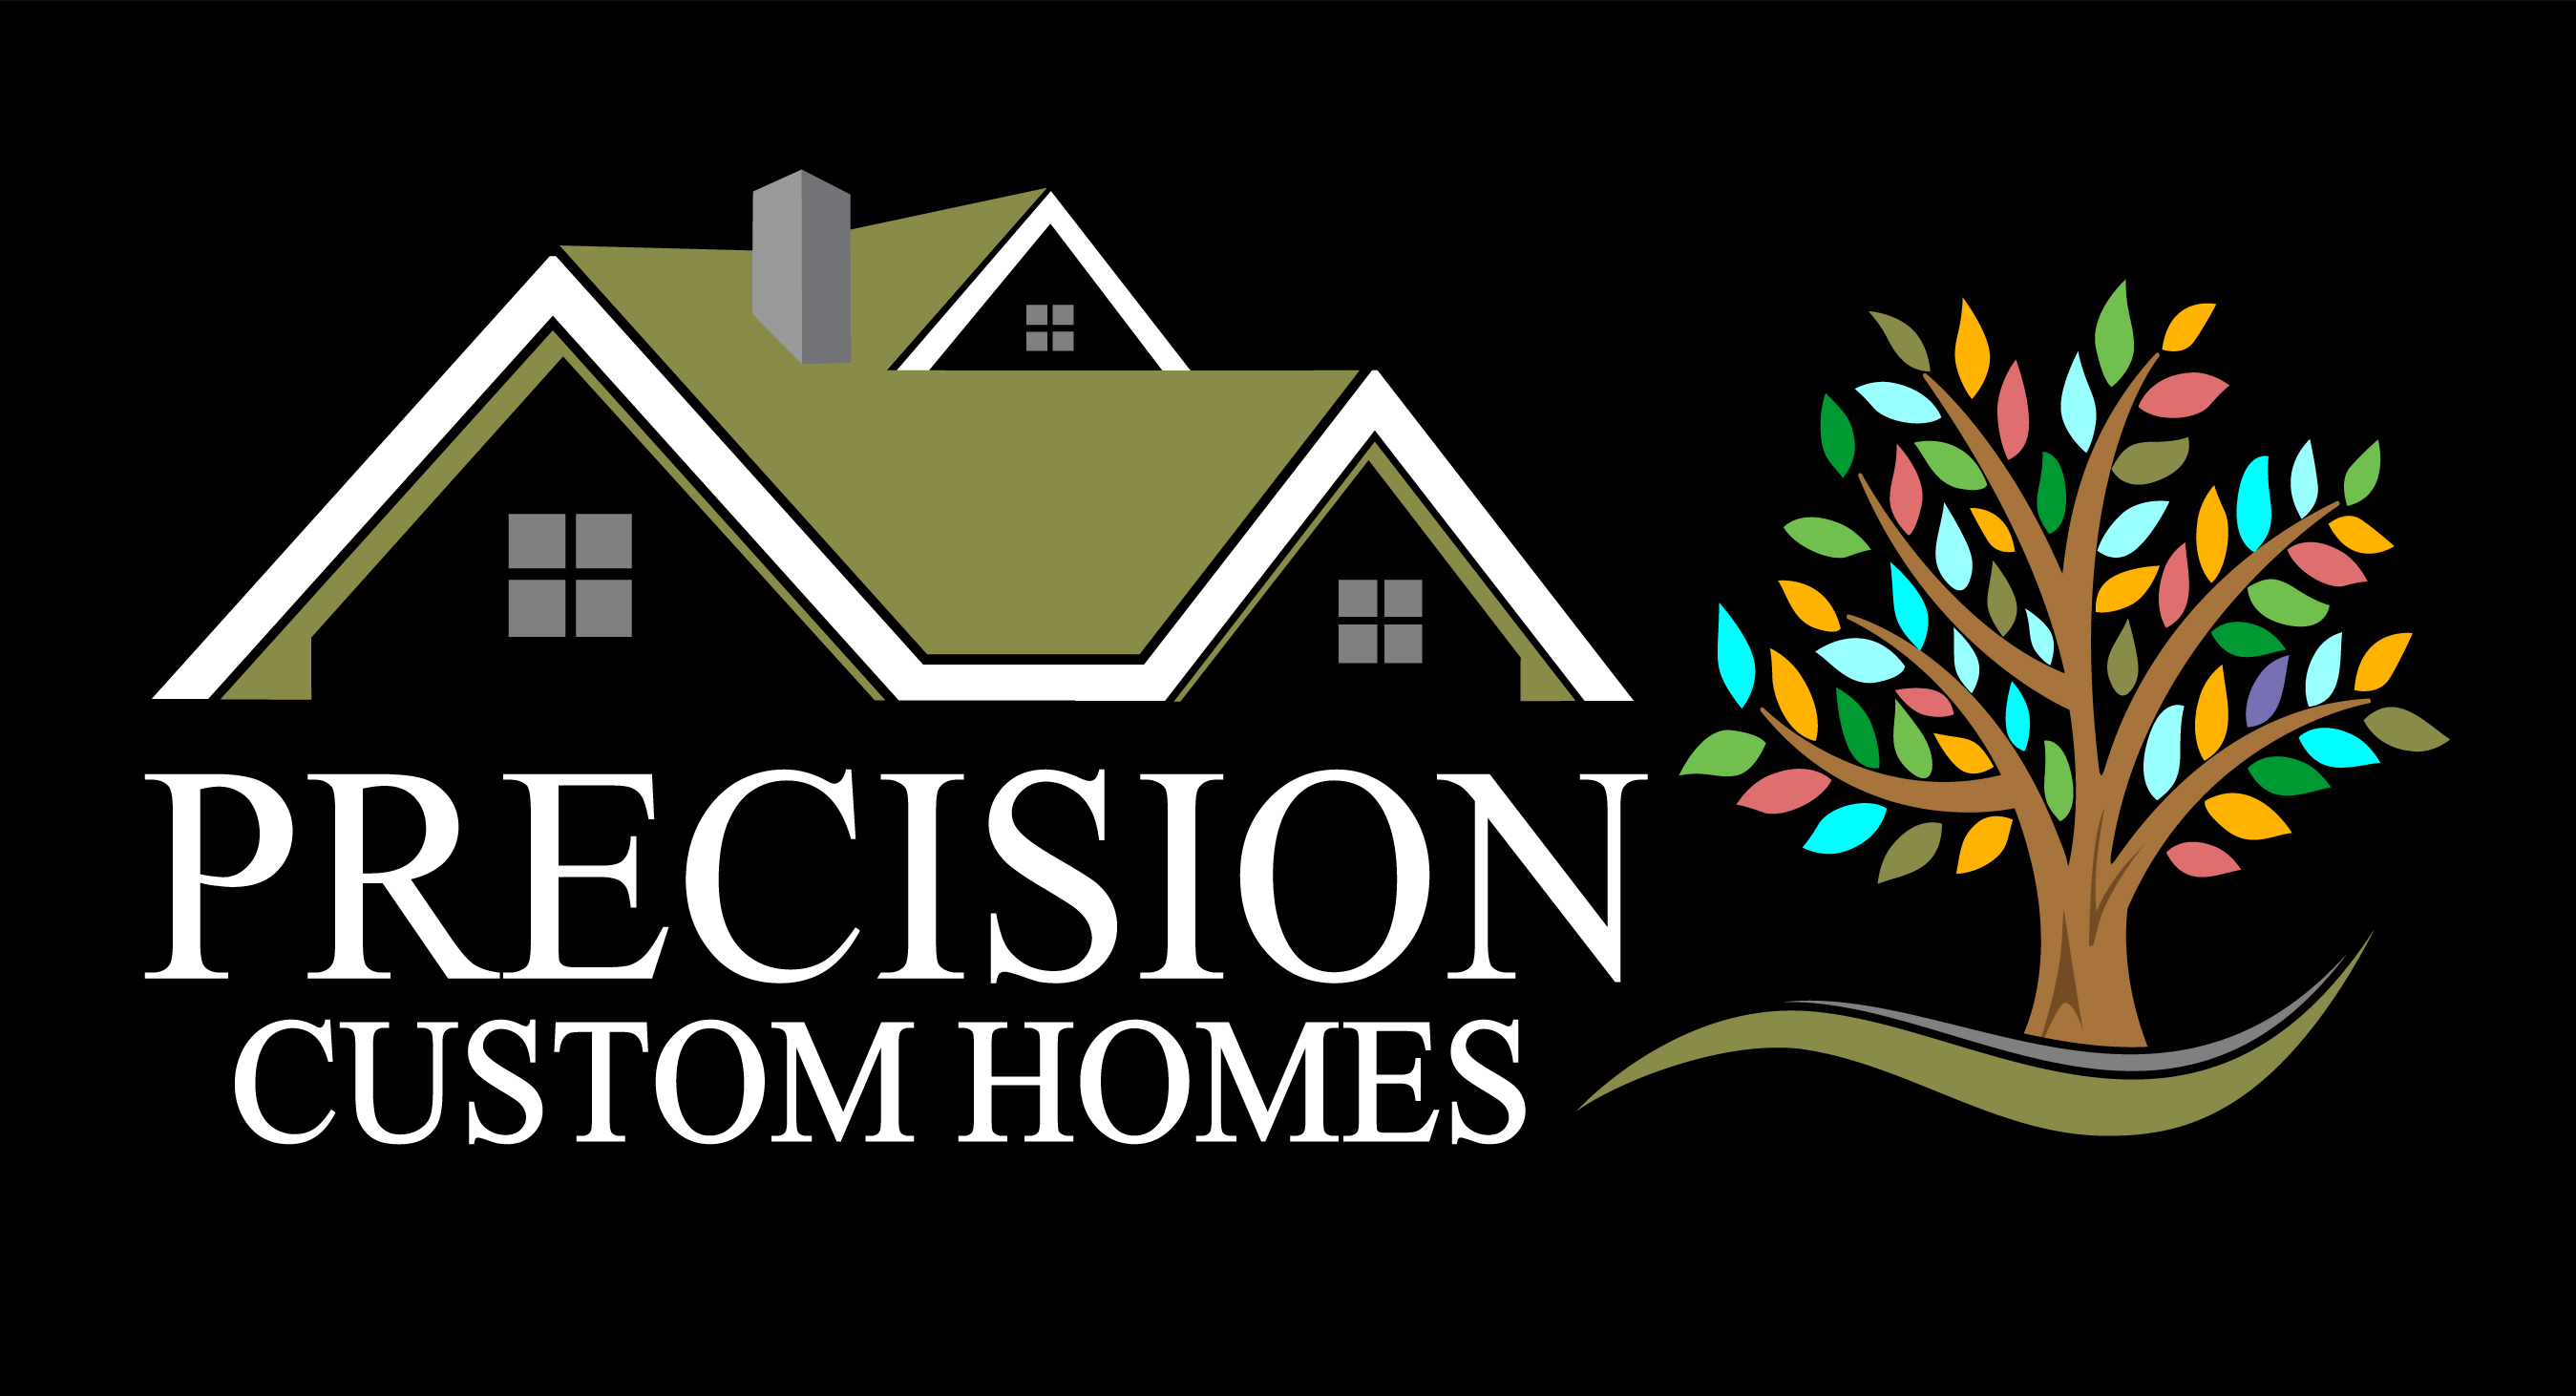 Precision Custom Homes